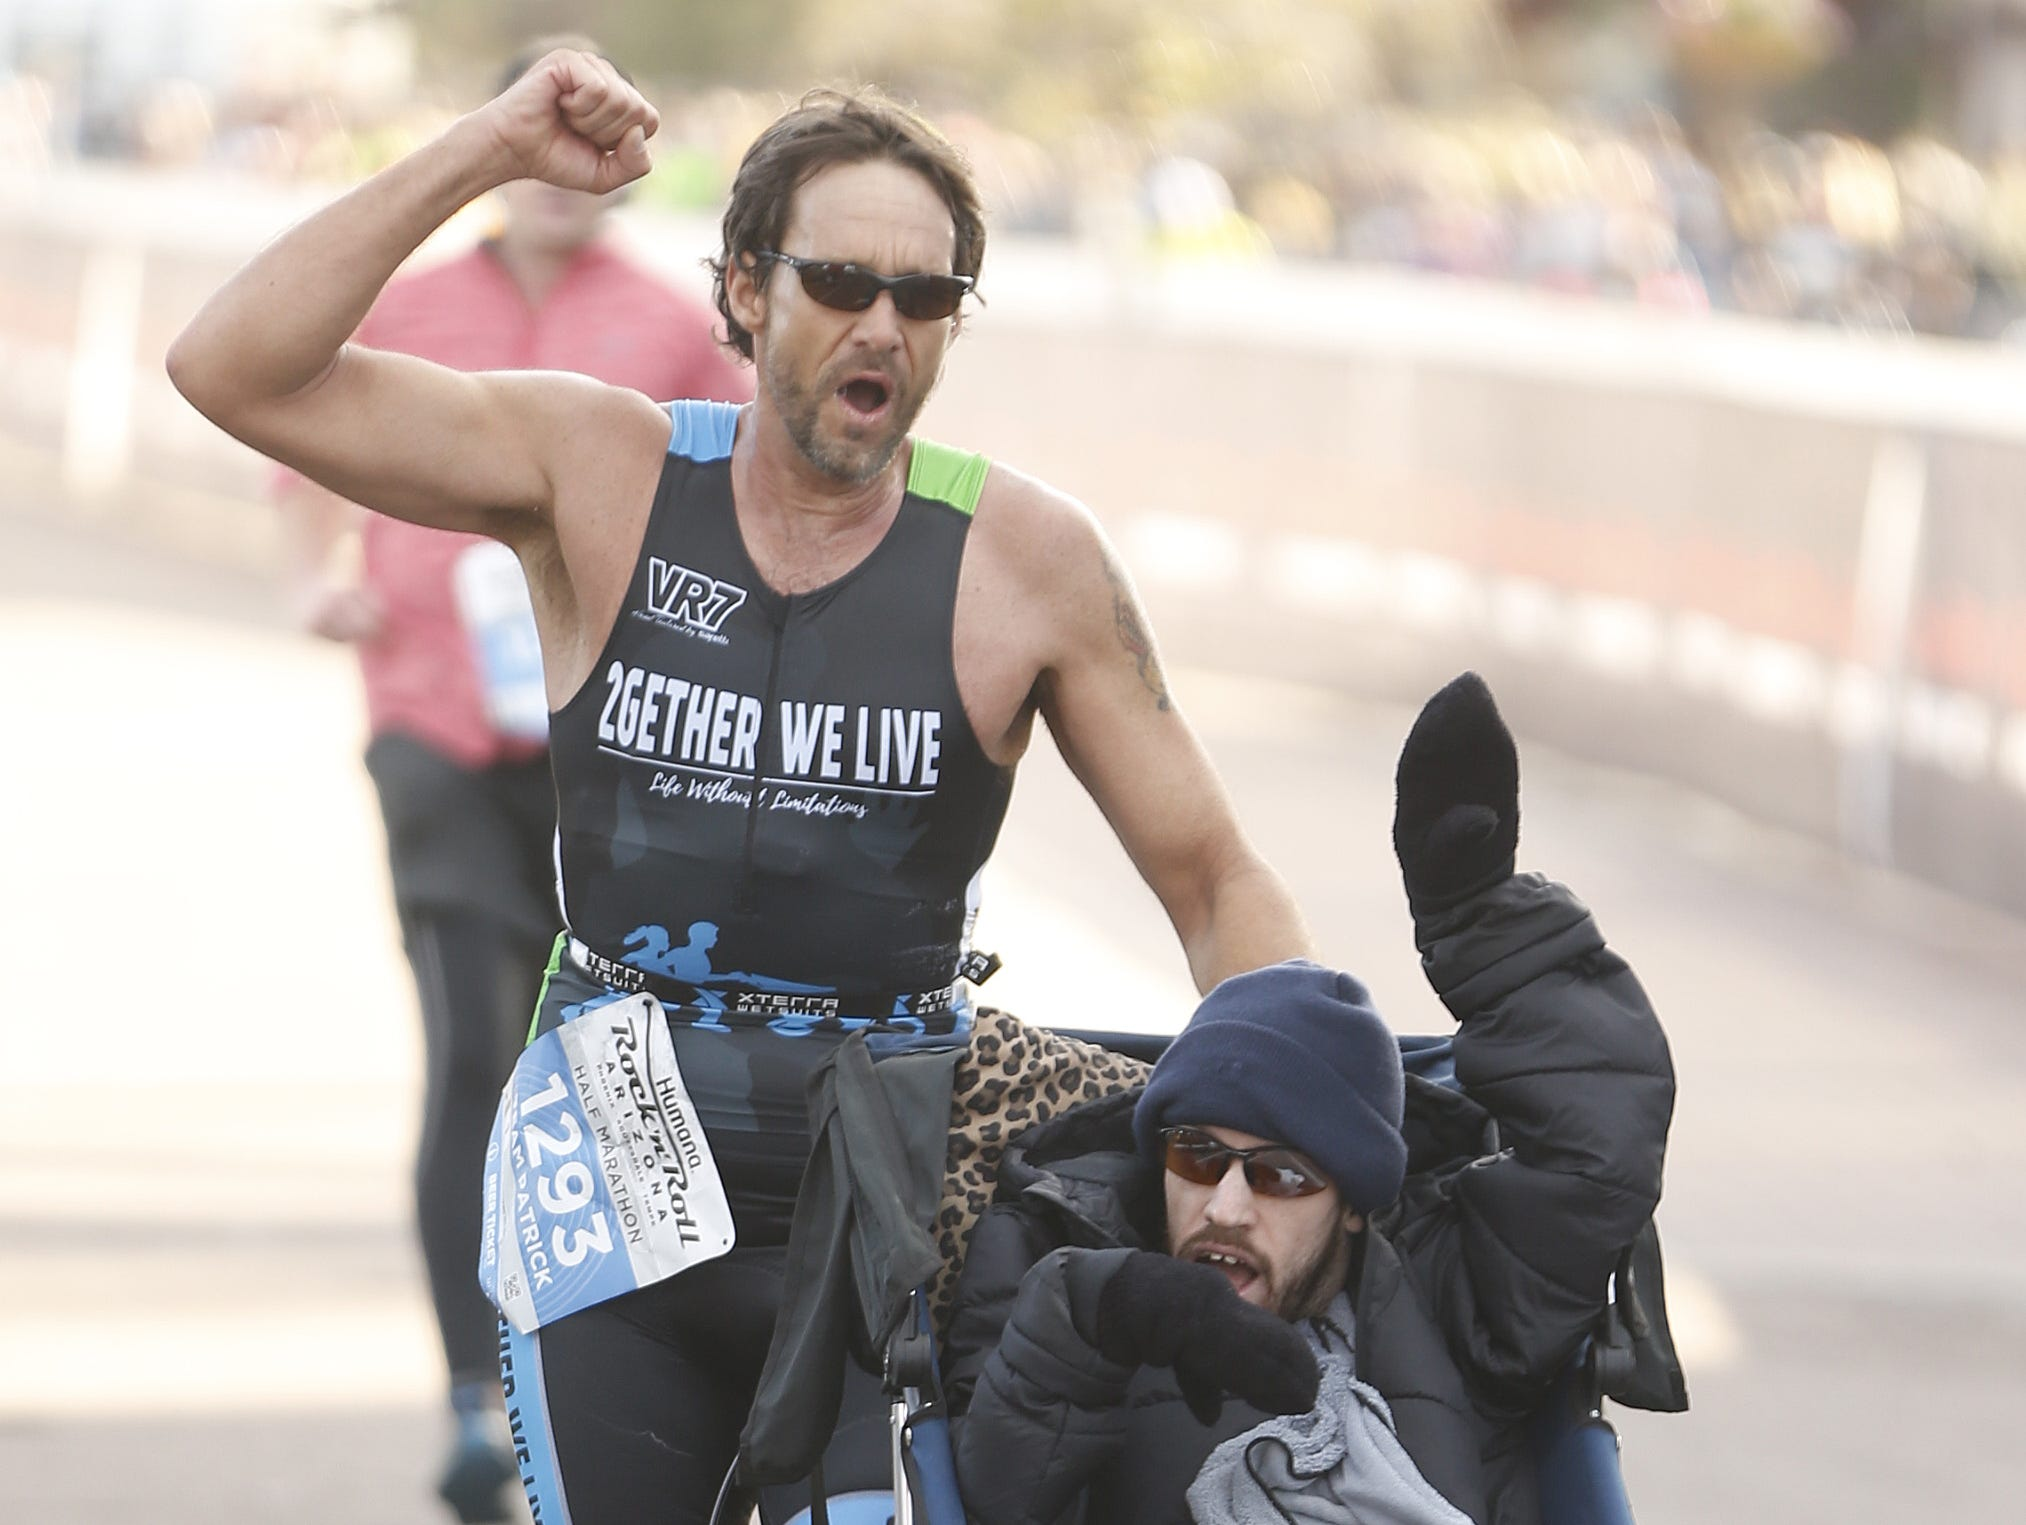 Matthew Reines pushes Patrick Canez across the finish line during the Rock 'n' Roll half-marathon in Tempe on Jan. 20, 2019.